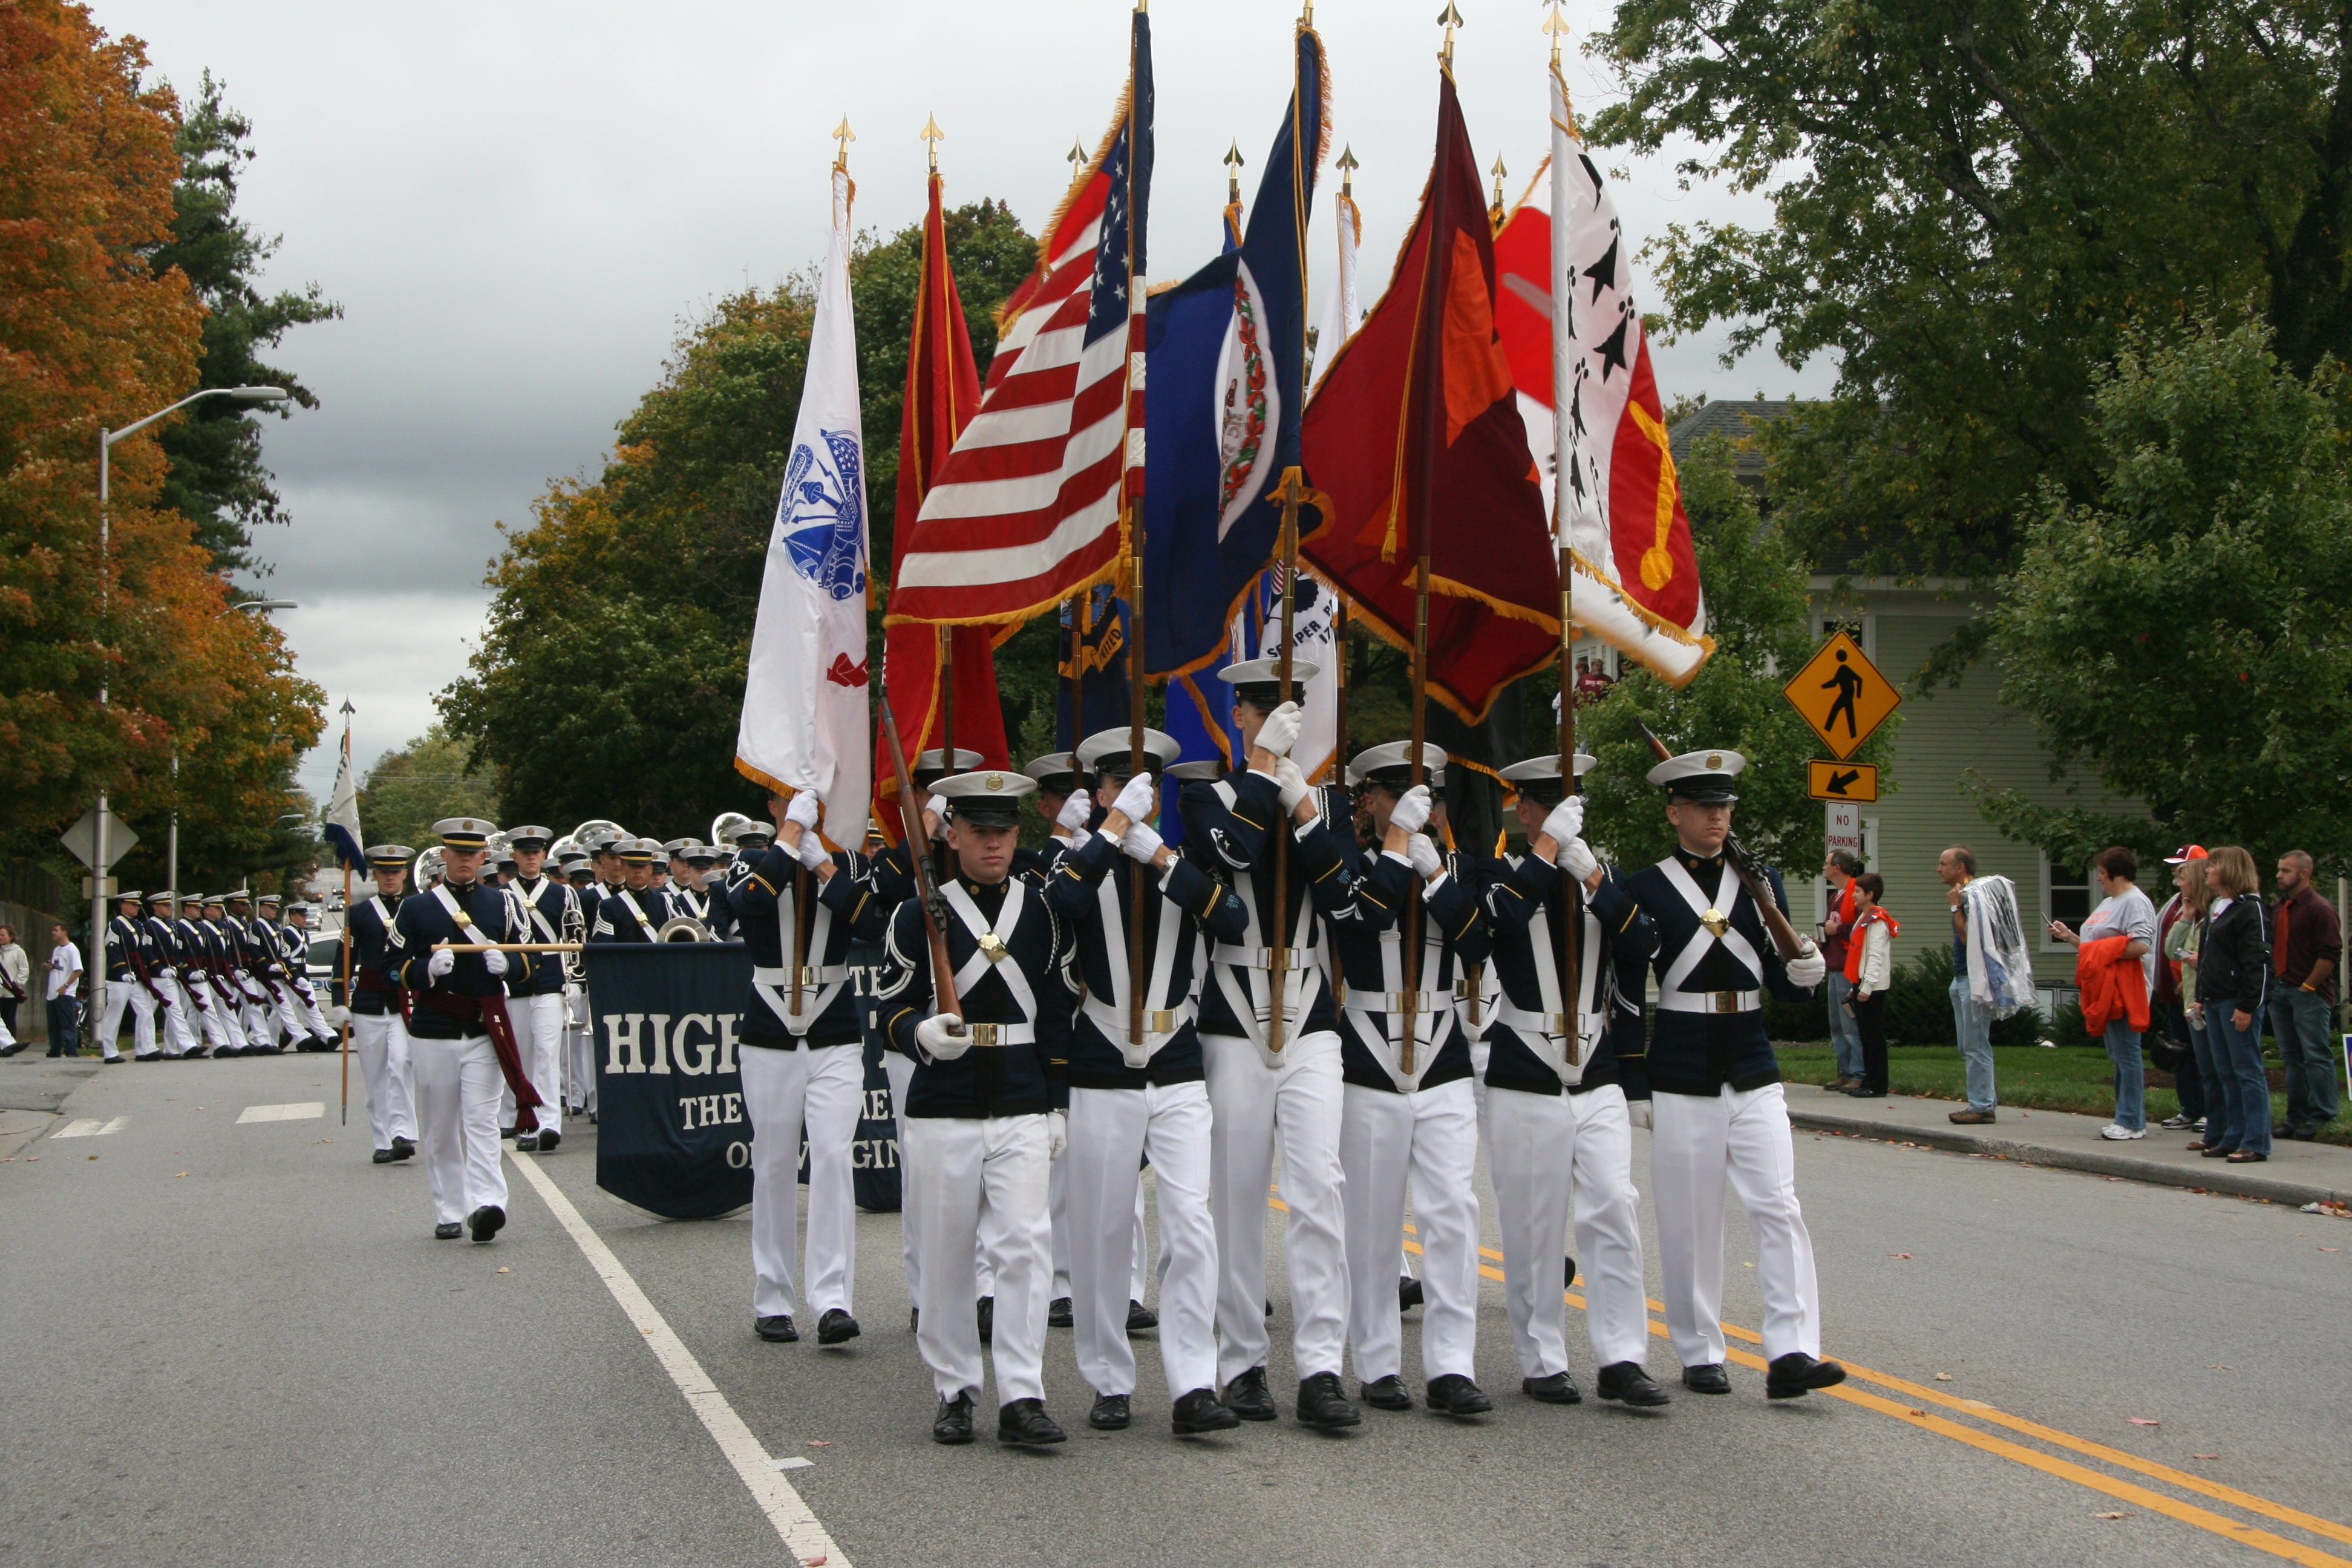 Corps of cadets Highty-Tighties and Color Guard